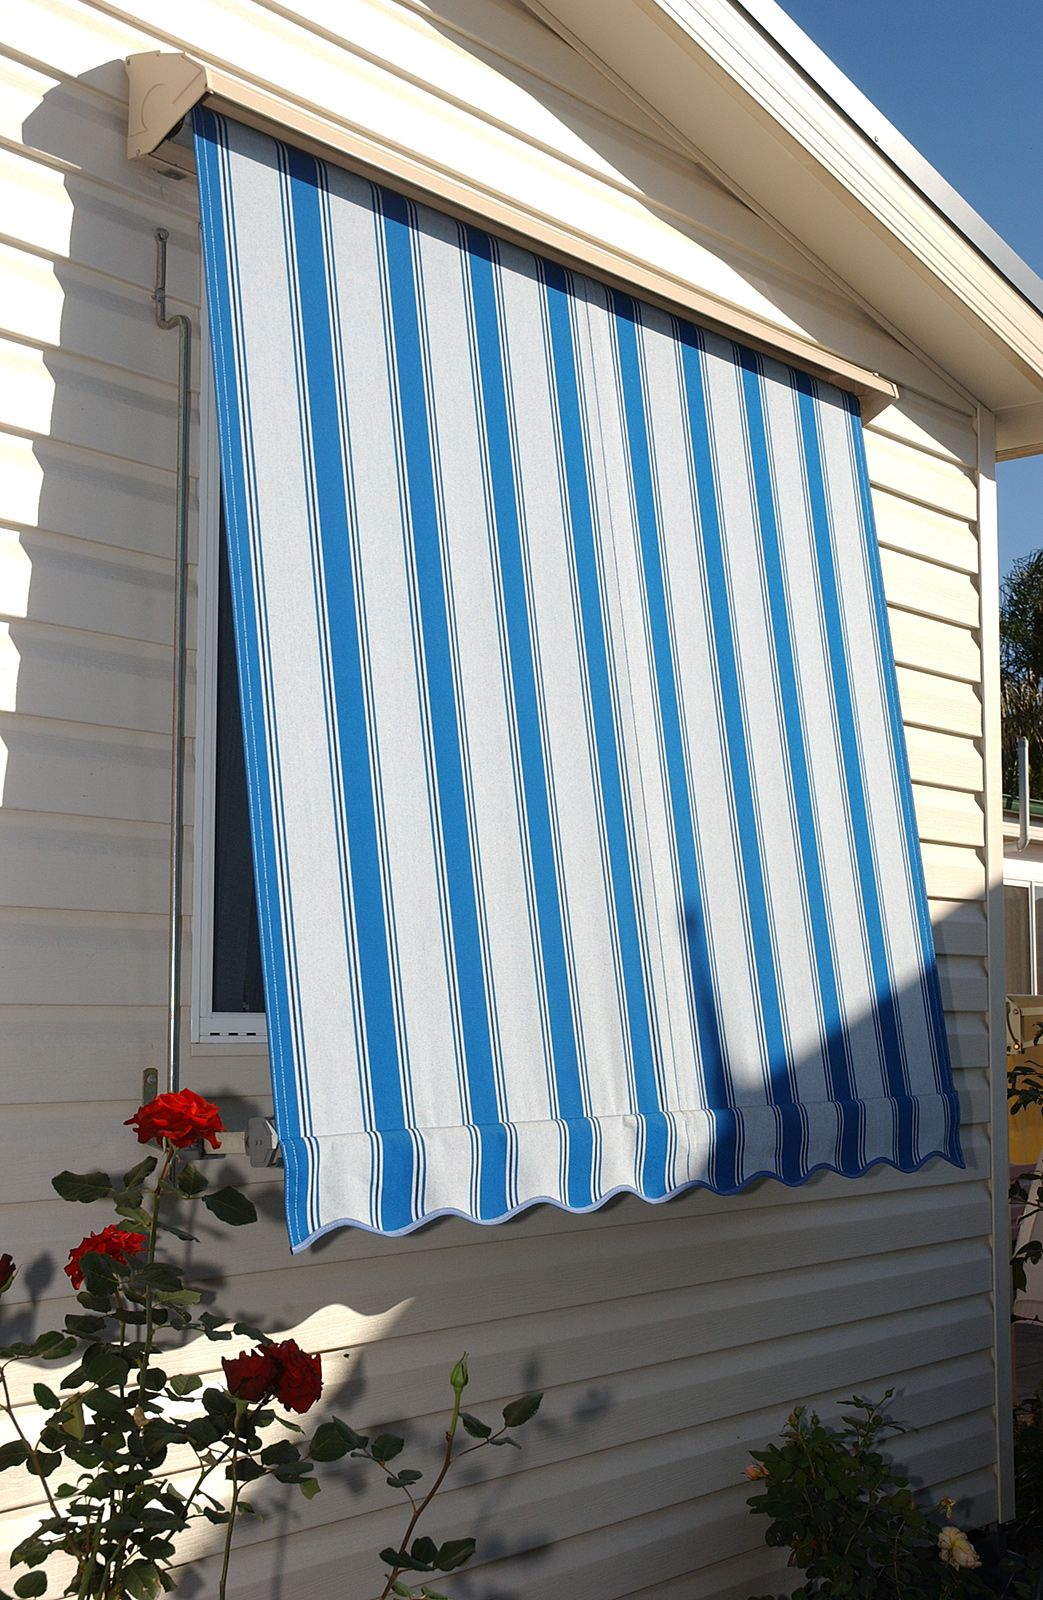 Innovative Retractable Awning Ideas Pictures Design For Your Summer Diy Awning Pergola Shade Cover Shade House